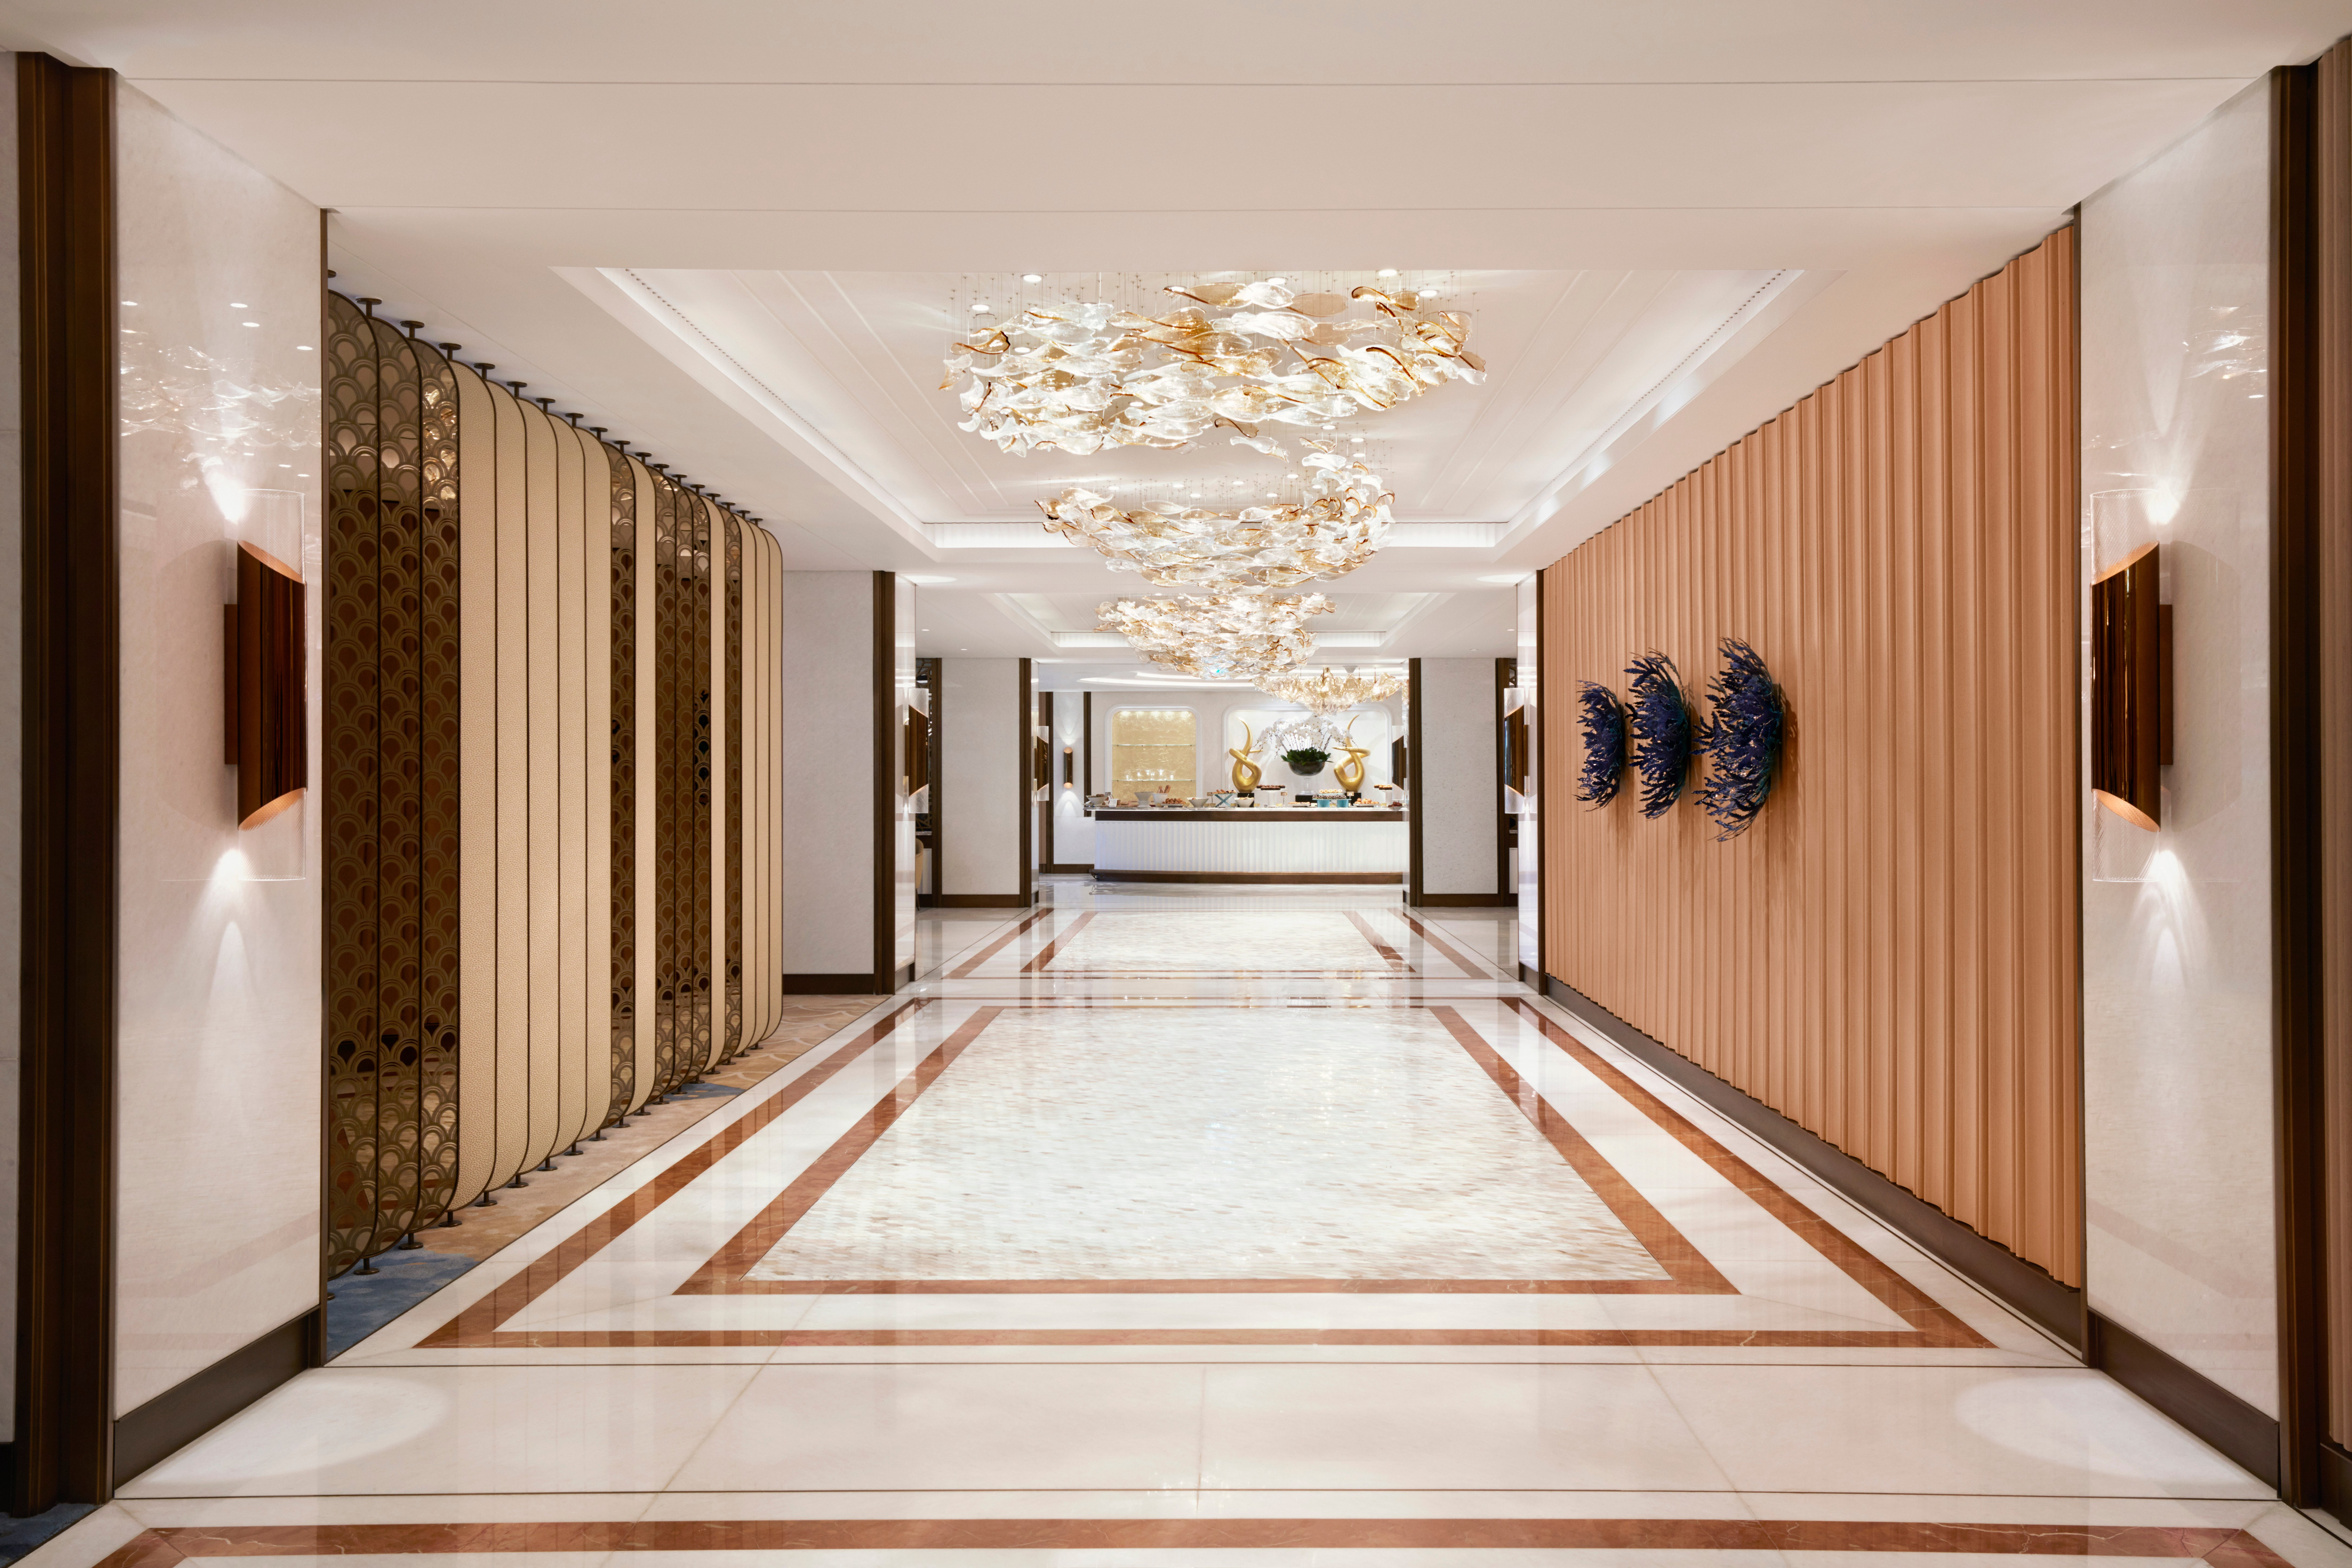 The hotel's Imperial Club service has relaunched with a brand new 3,091-square-meter lounge in the East Tower.